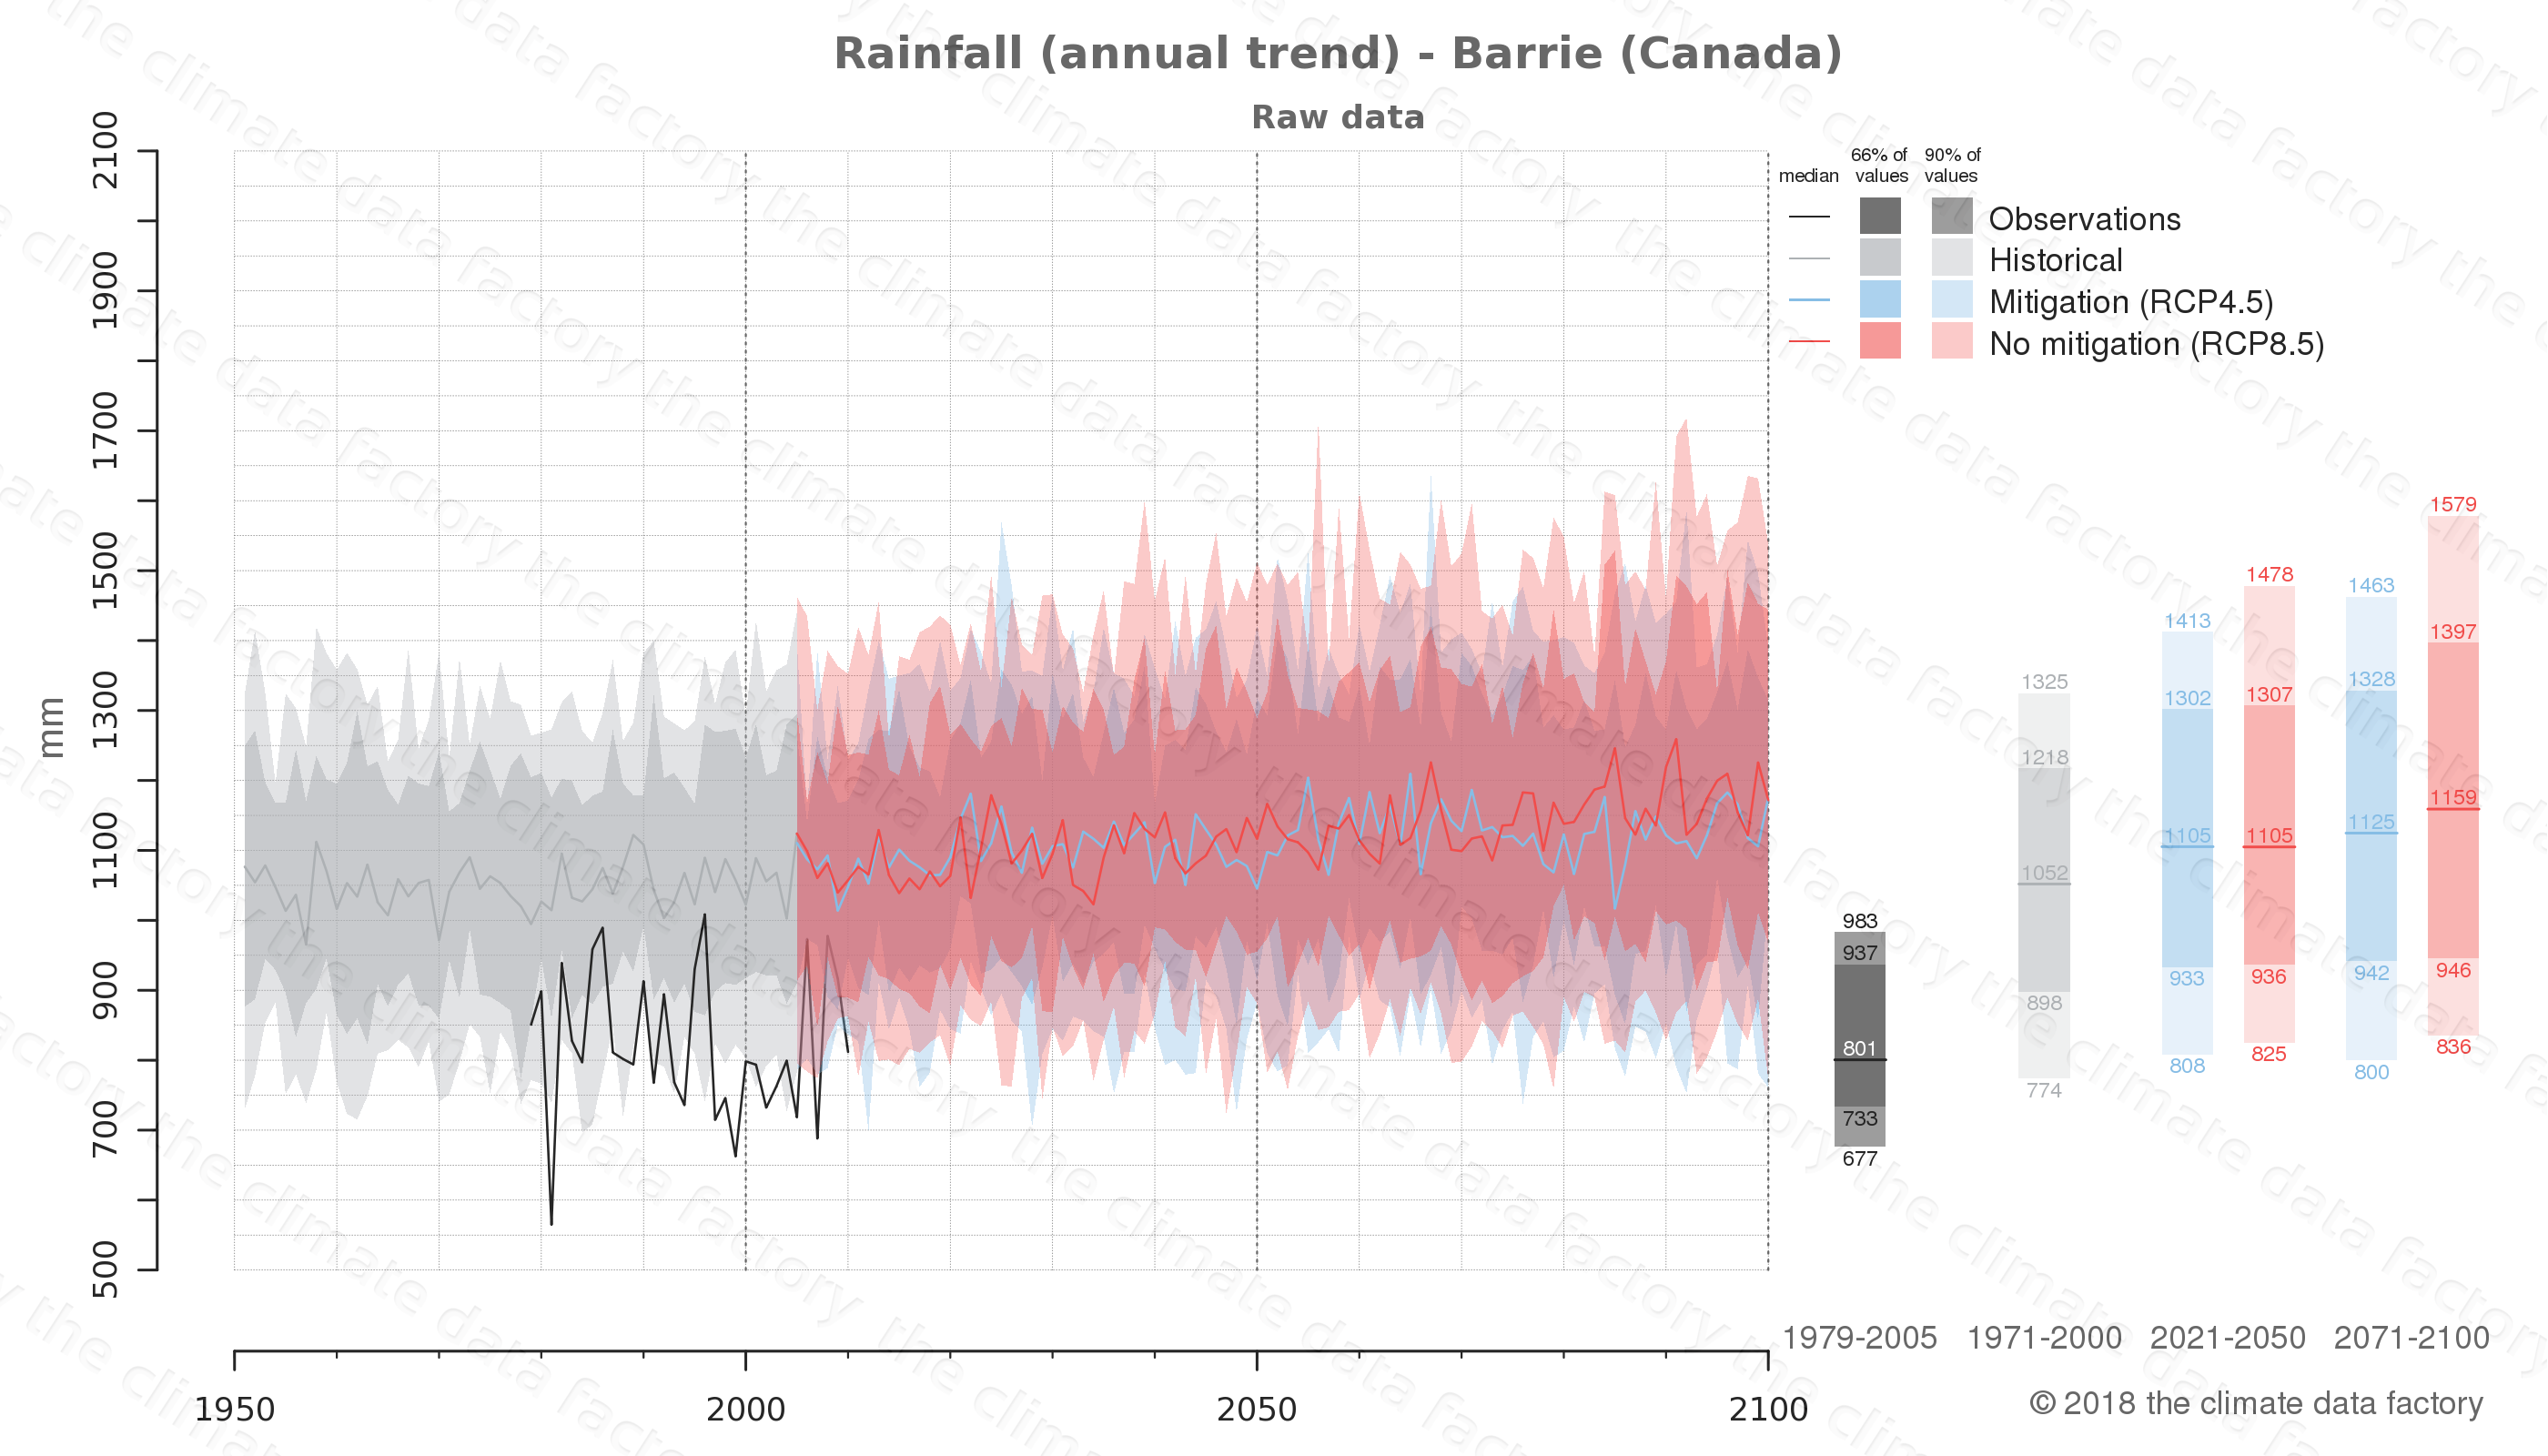 climate change data policy adaptation climate graph city data rainfall barrie canada